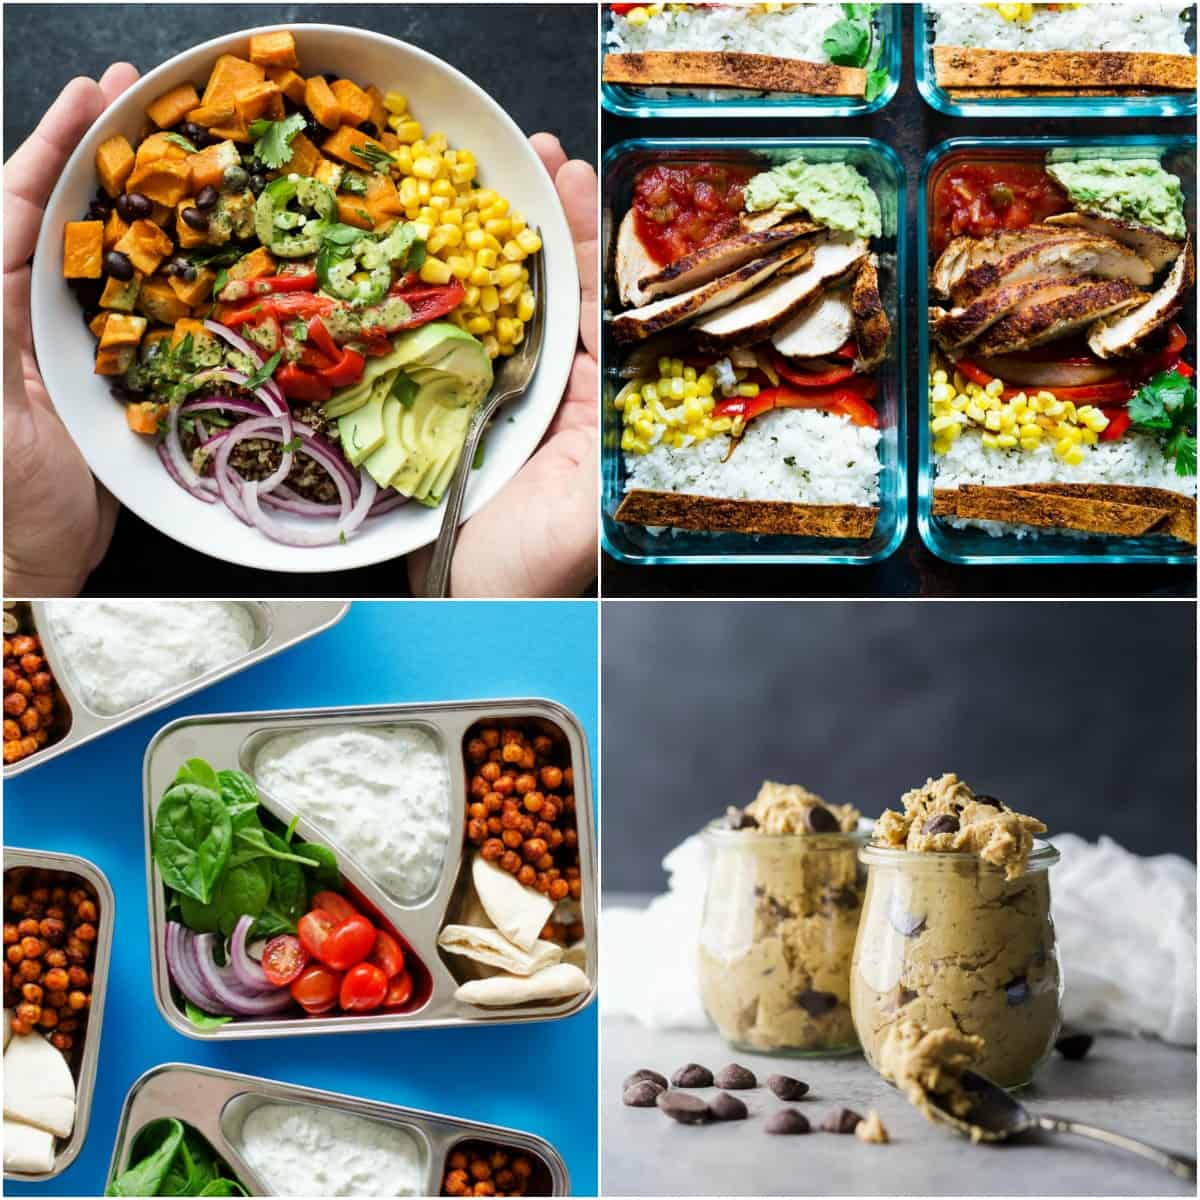 23 of the best meal prep recipes for breakfast lunch dinner easy 23 of the best meal prep recipes for breakfast lunch dinner easy healthy recipes forumfinder Gallery